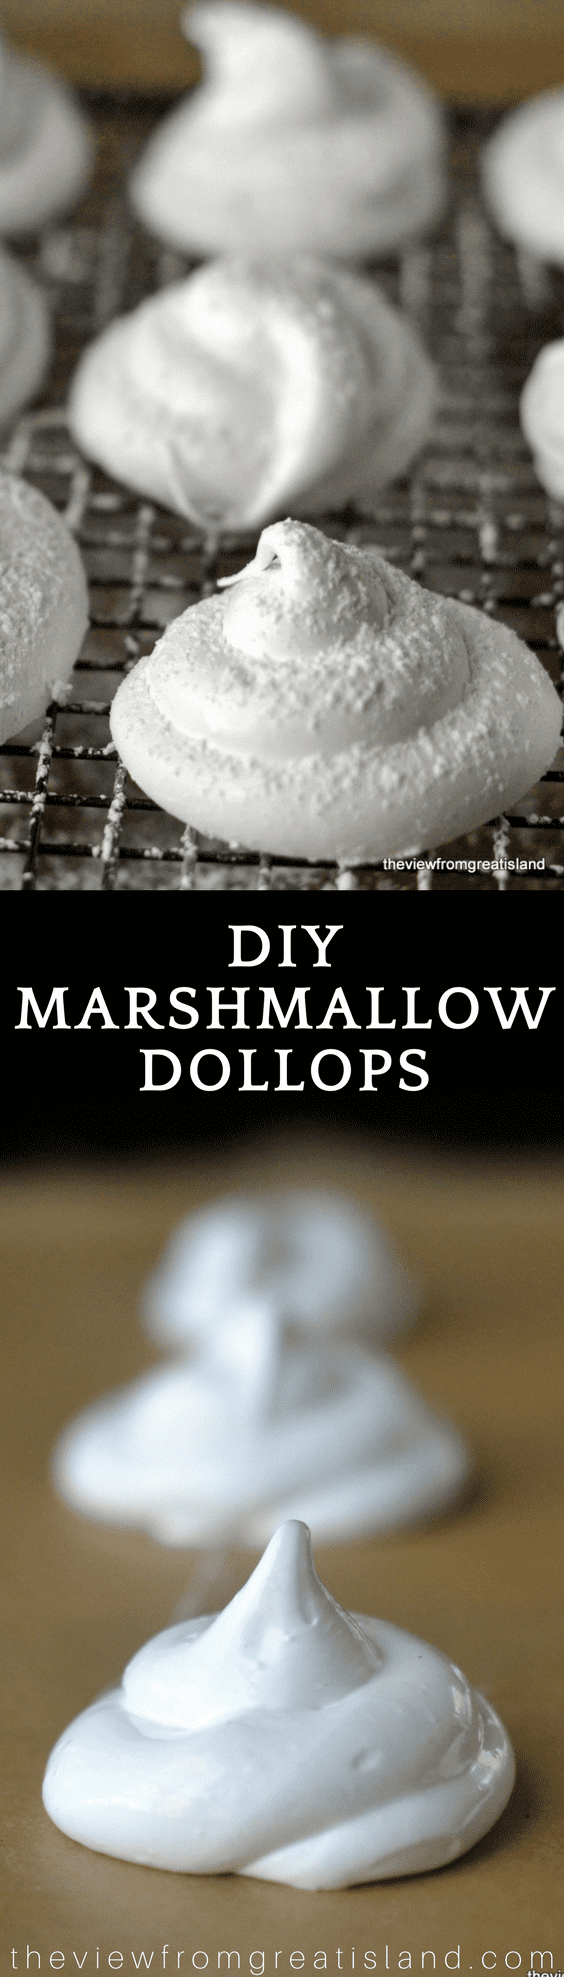 Who says marshmallows have to be square? These little DIY marshmallow Dollops fit perfectly on a cup of cocoa, and look prettier, too! #homemademarshmallows #hotcocoa #hotchocolate #marshmallows #dessert #holidaydessert #Christmas #holidays #cocoa